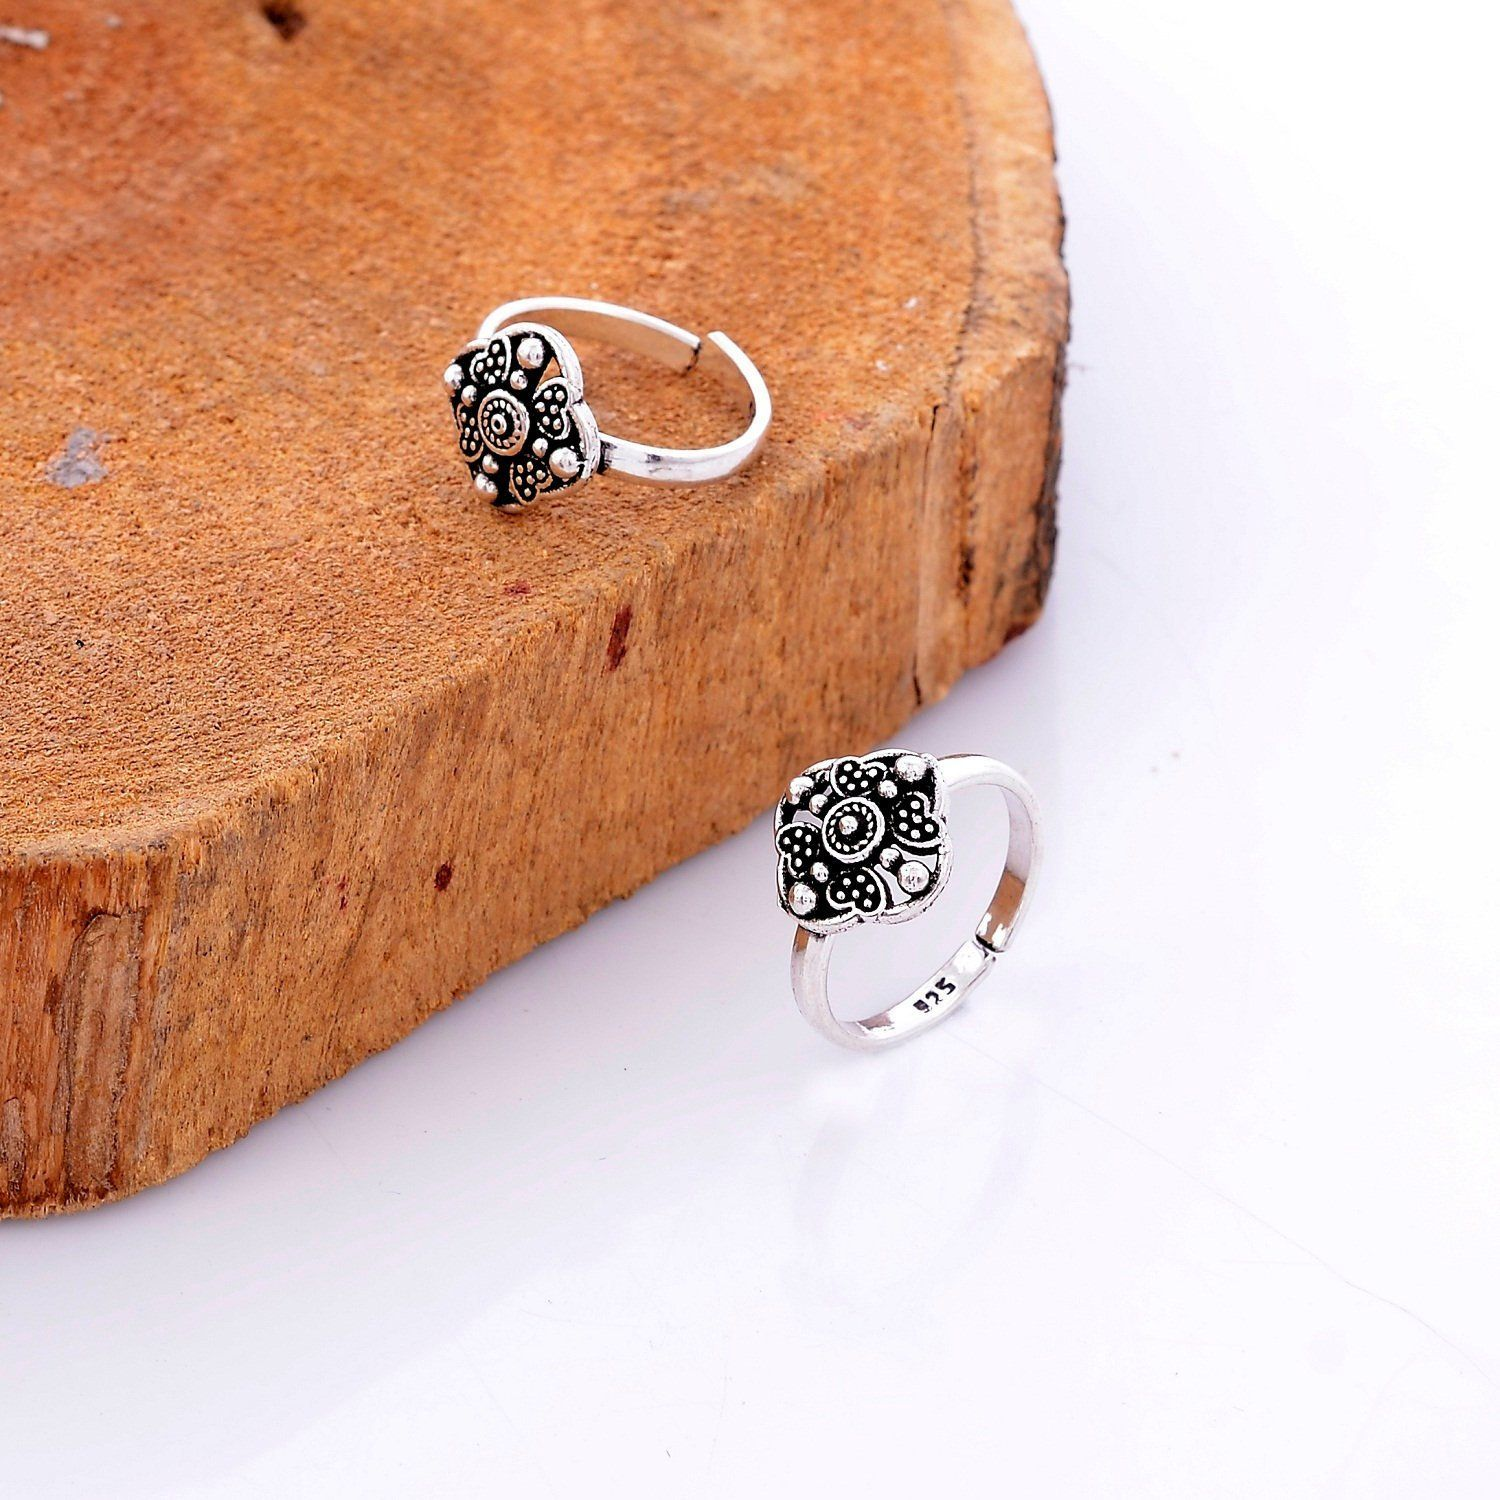 Adjustable Cross Toe Ring Sterling Silver 925 Fashion Beach Jewelry Gift